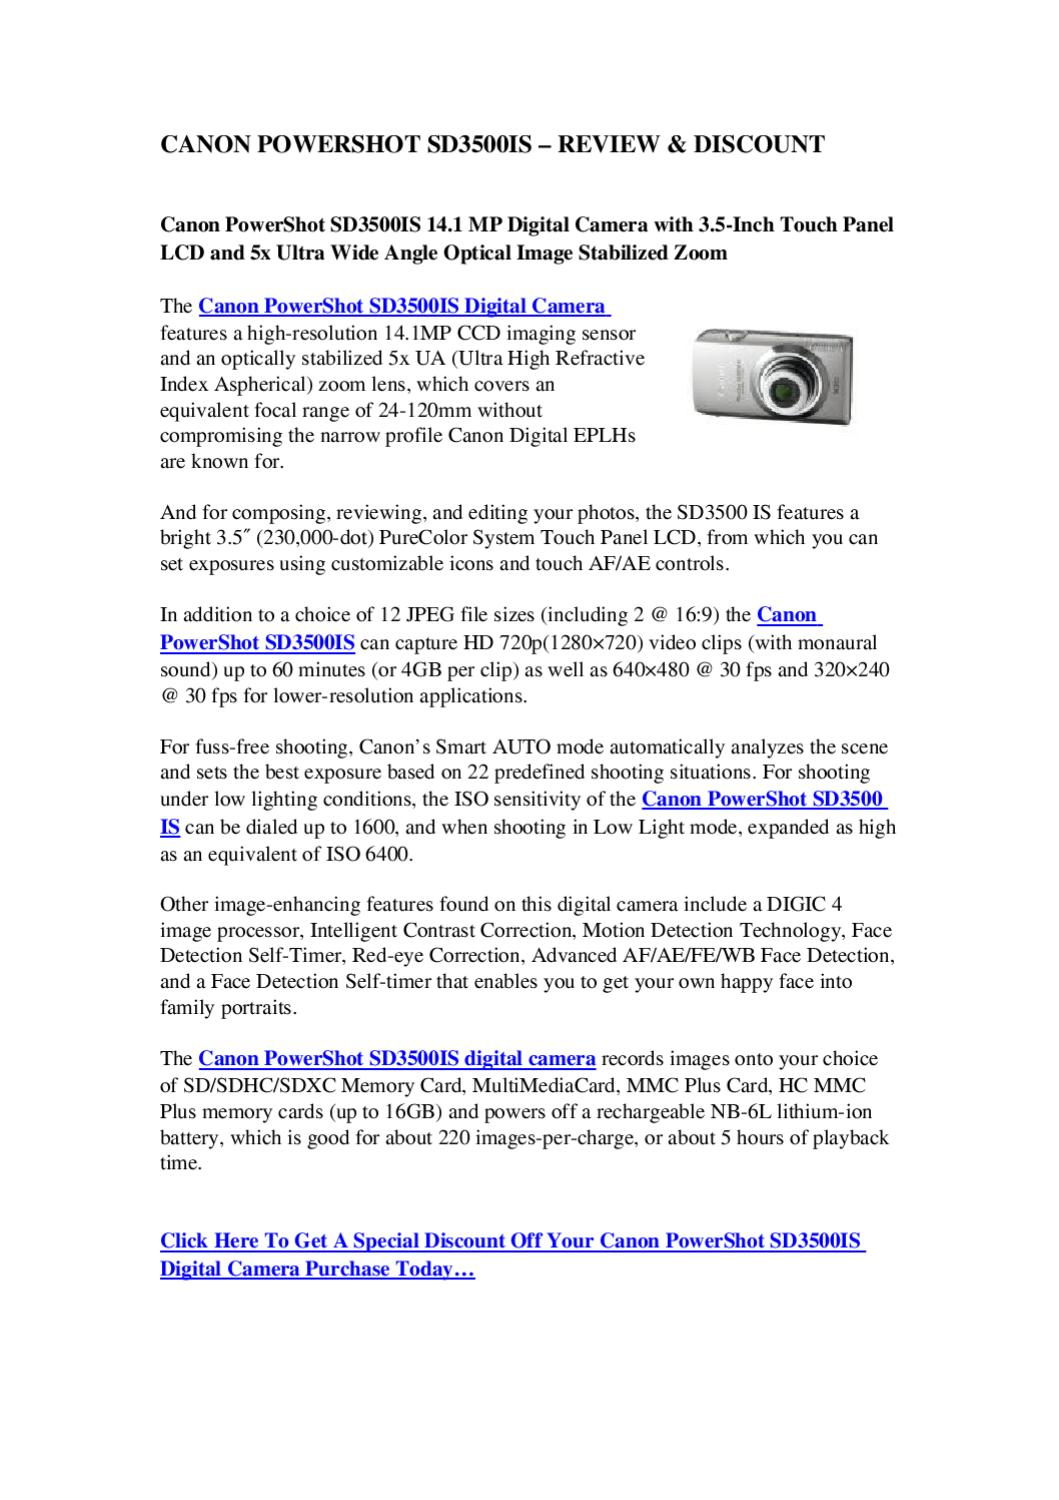 Canon PowerShot SD3500IS - Review & Discount | Best Digital Cameras